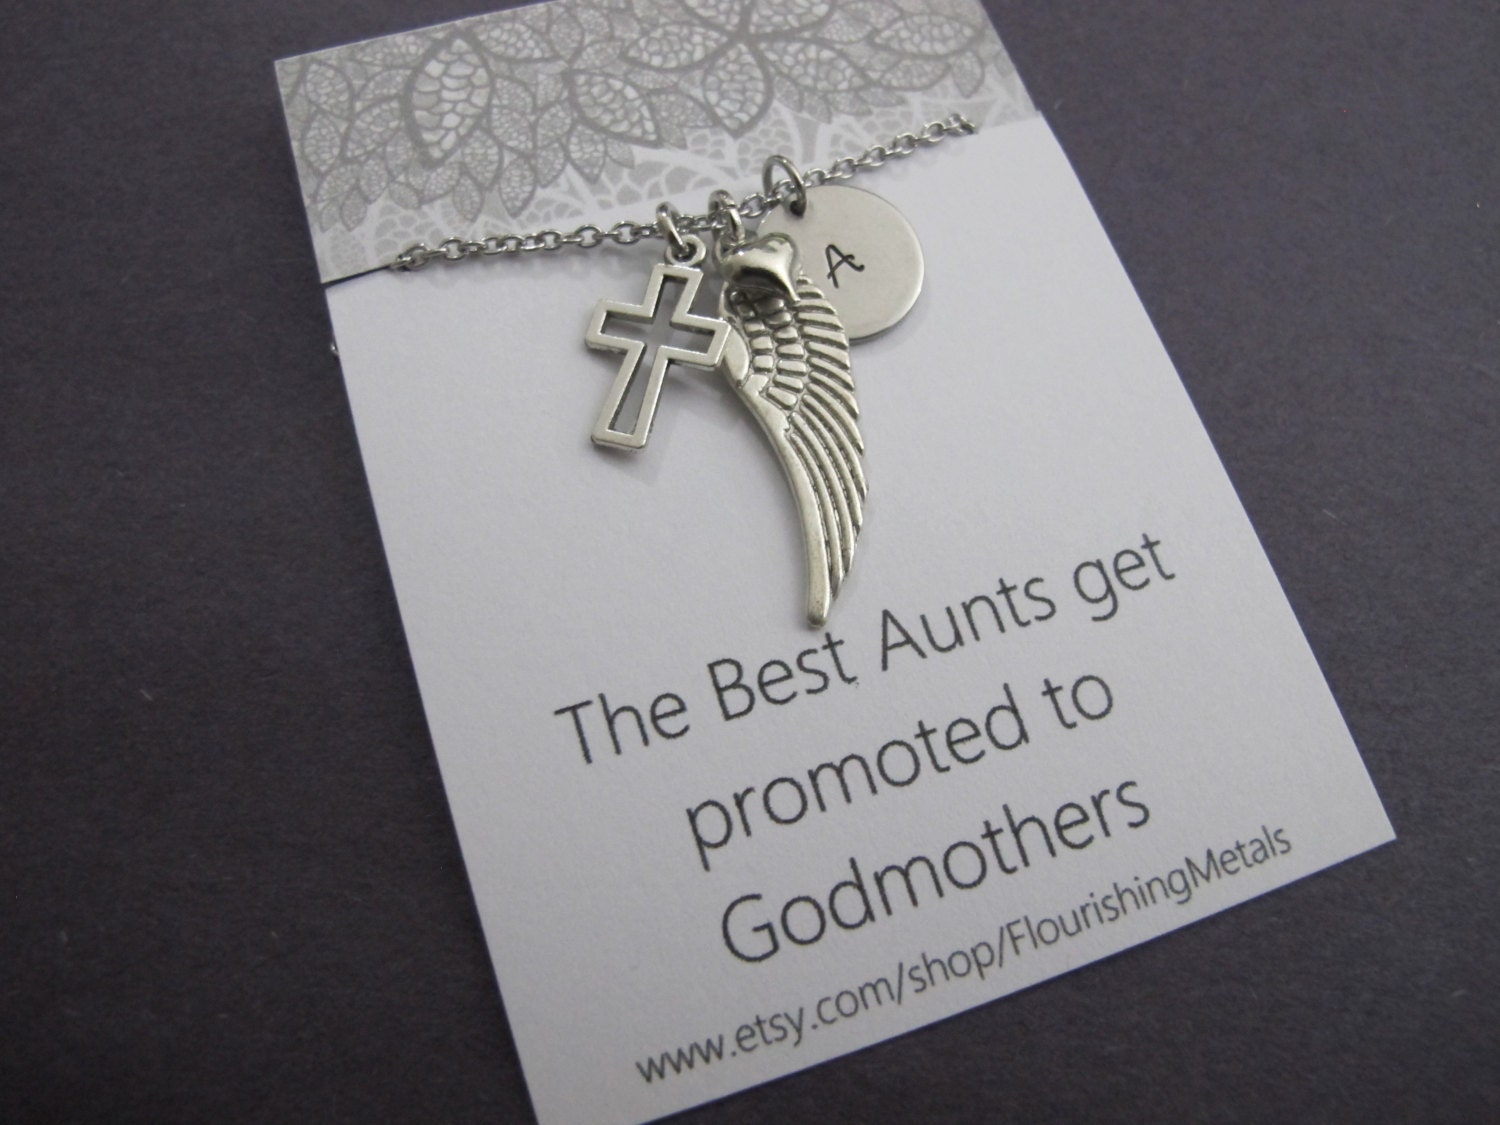 Gift For Godmother Godmother Gift Mothers Day Gift: Godmother Gift Baptism Gifts CommunionGift For Aunt